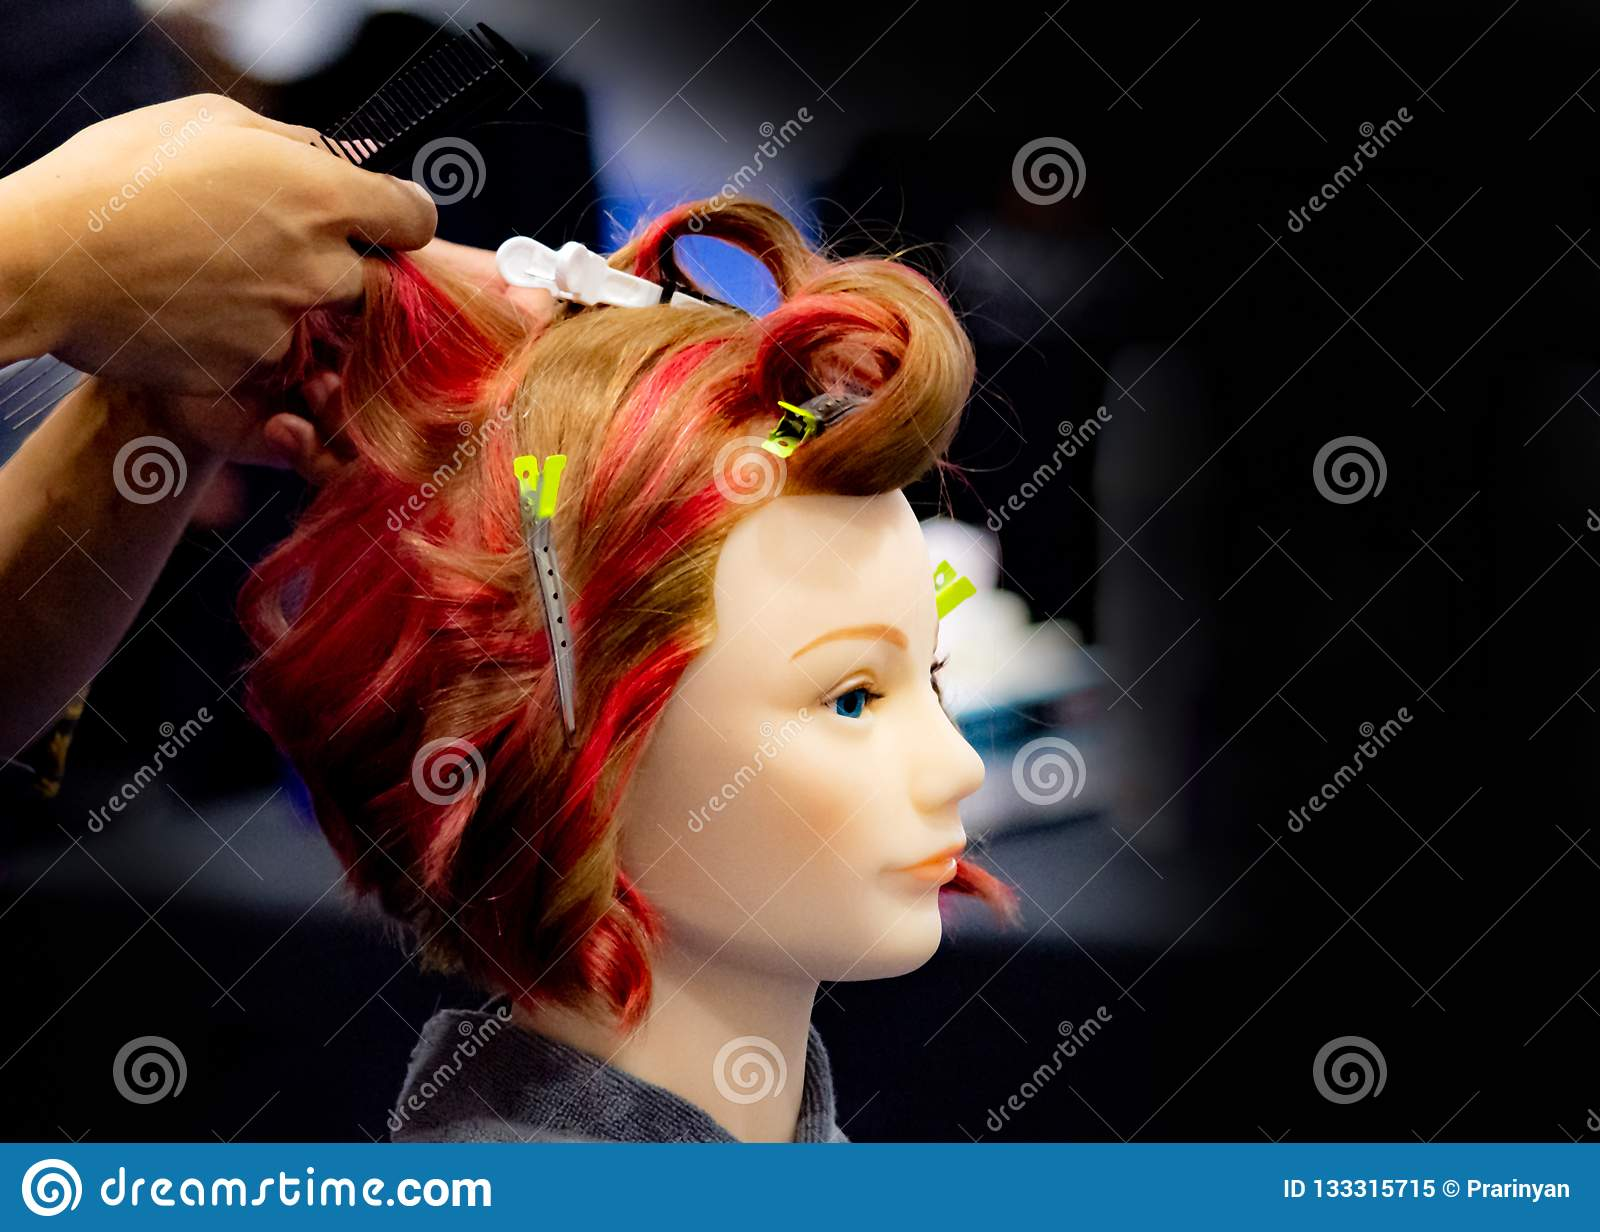 Hairstyles On Dummy Head Of Hair Salon Stock Image - Image of ...